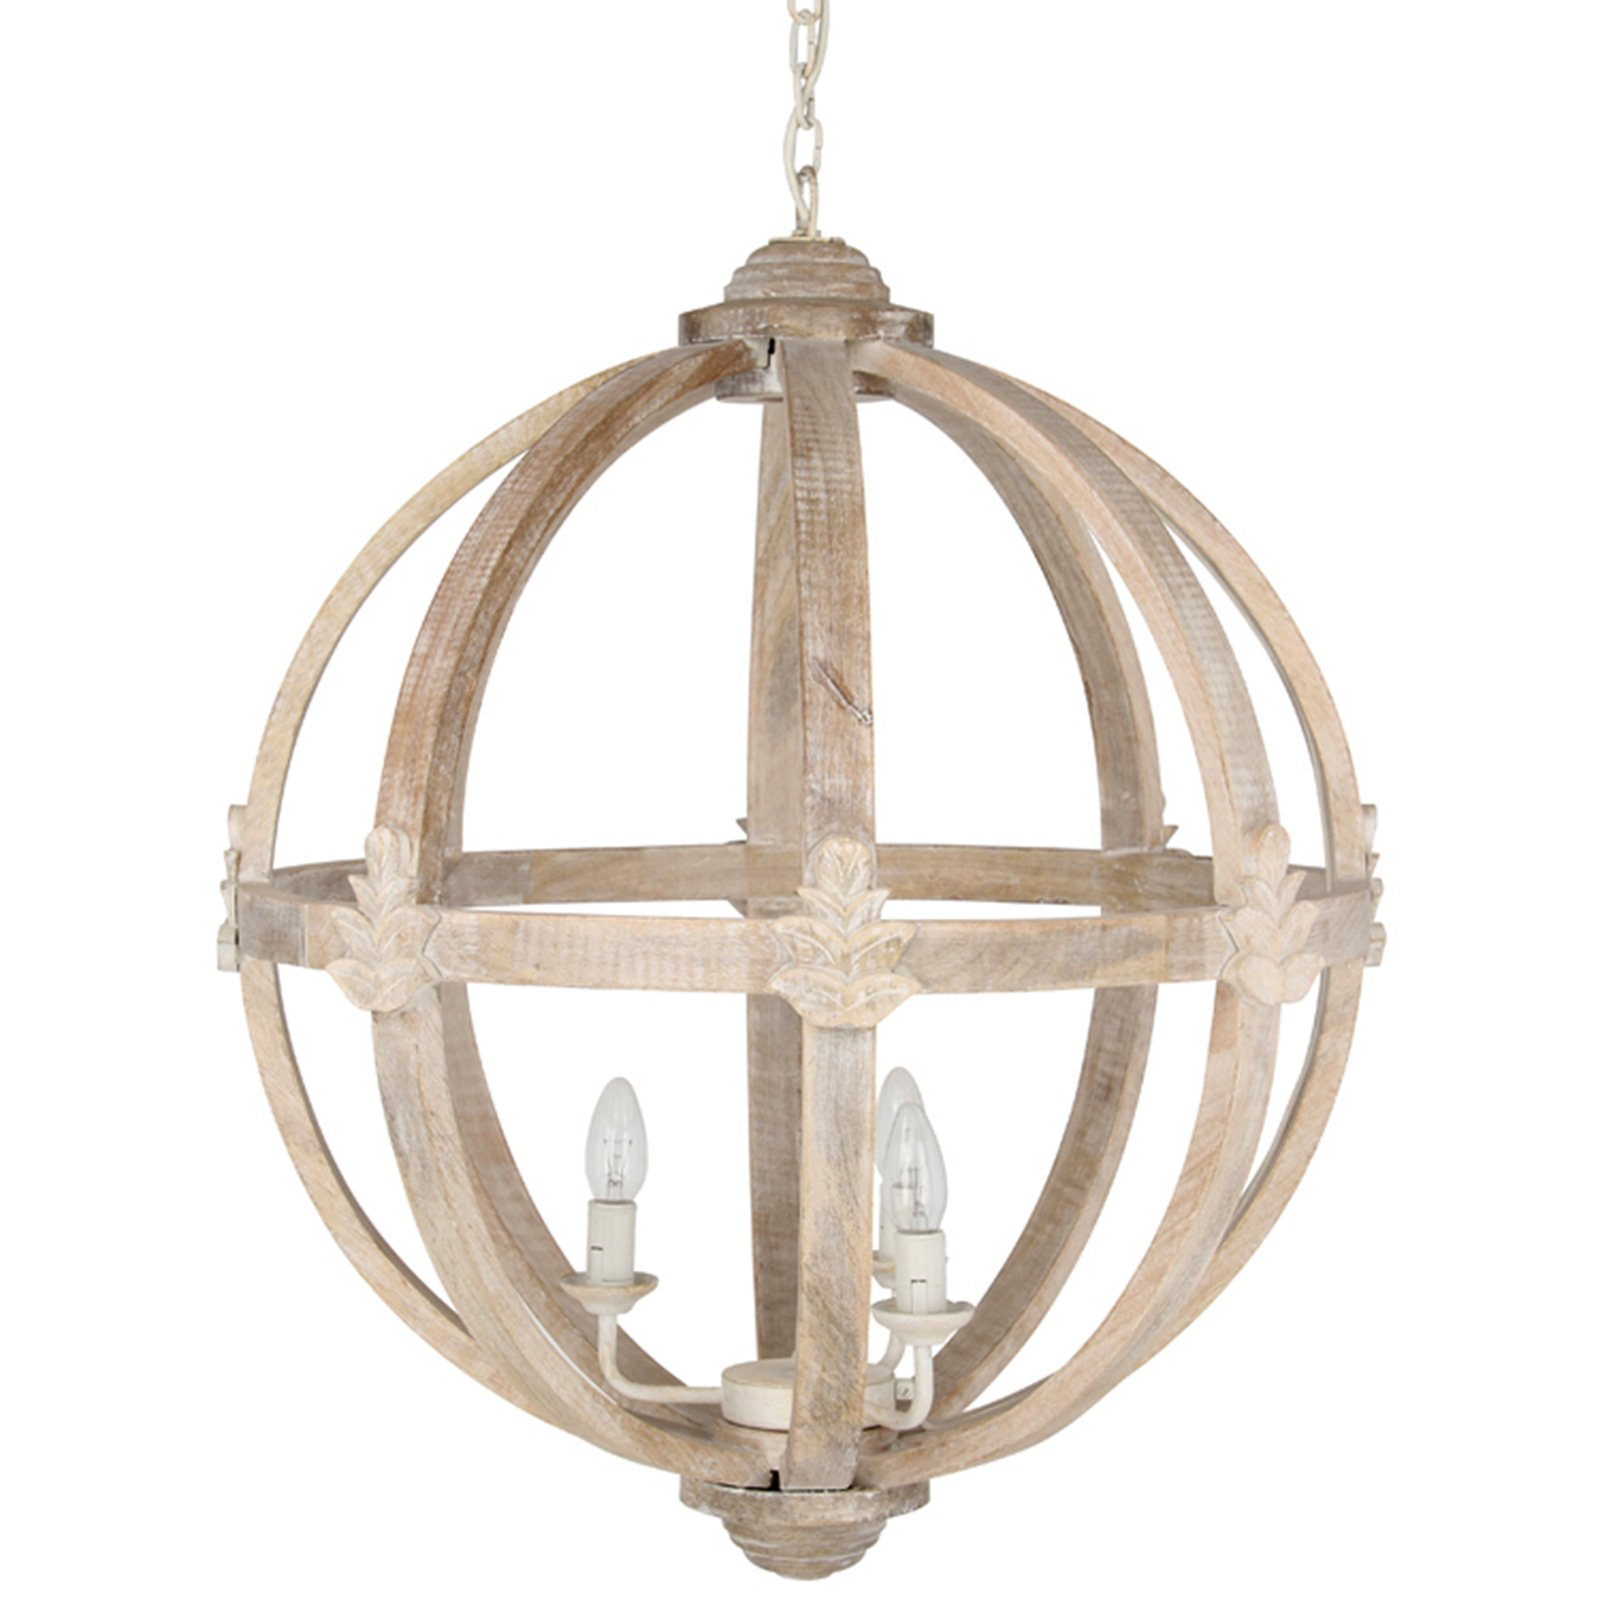 Picture of: Hicks And Hicks Dene Round Wood Pendant Light Hicks Hicks